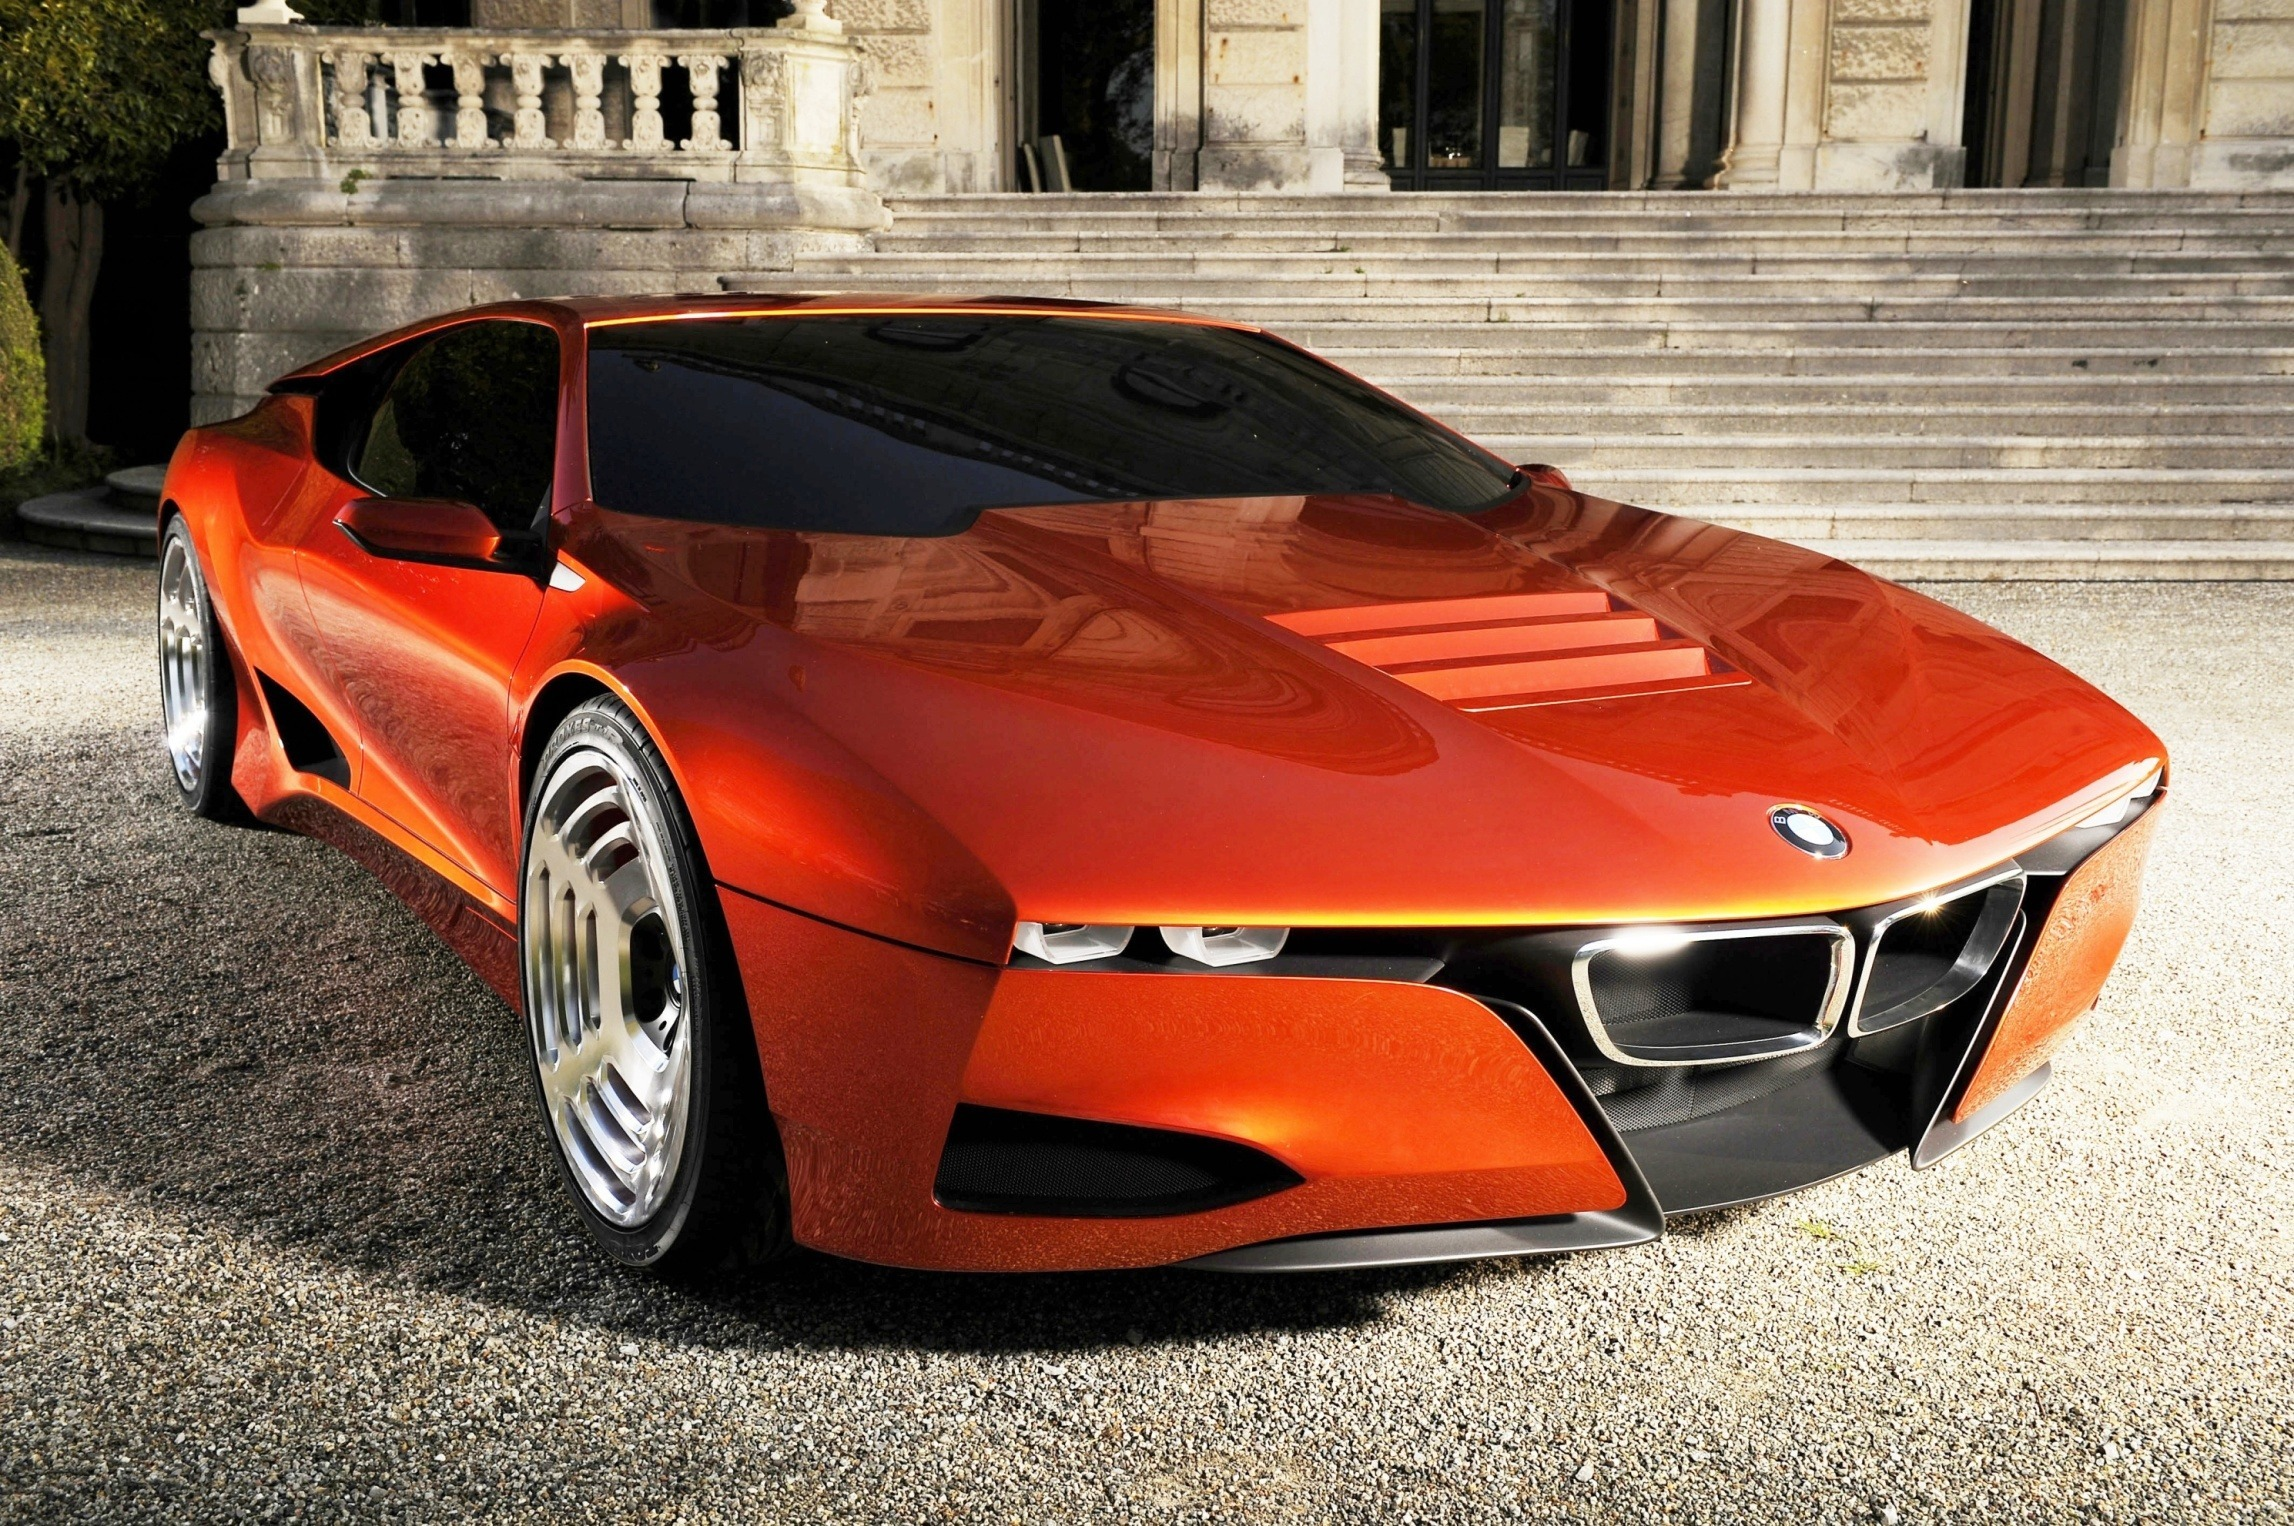 Supercars Then And Now 1980 Bmw M1 Versus 2008 Bmw M1